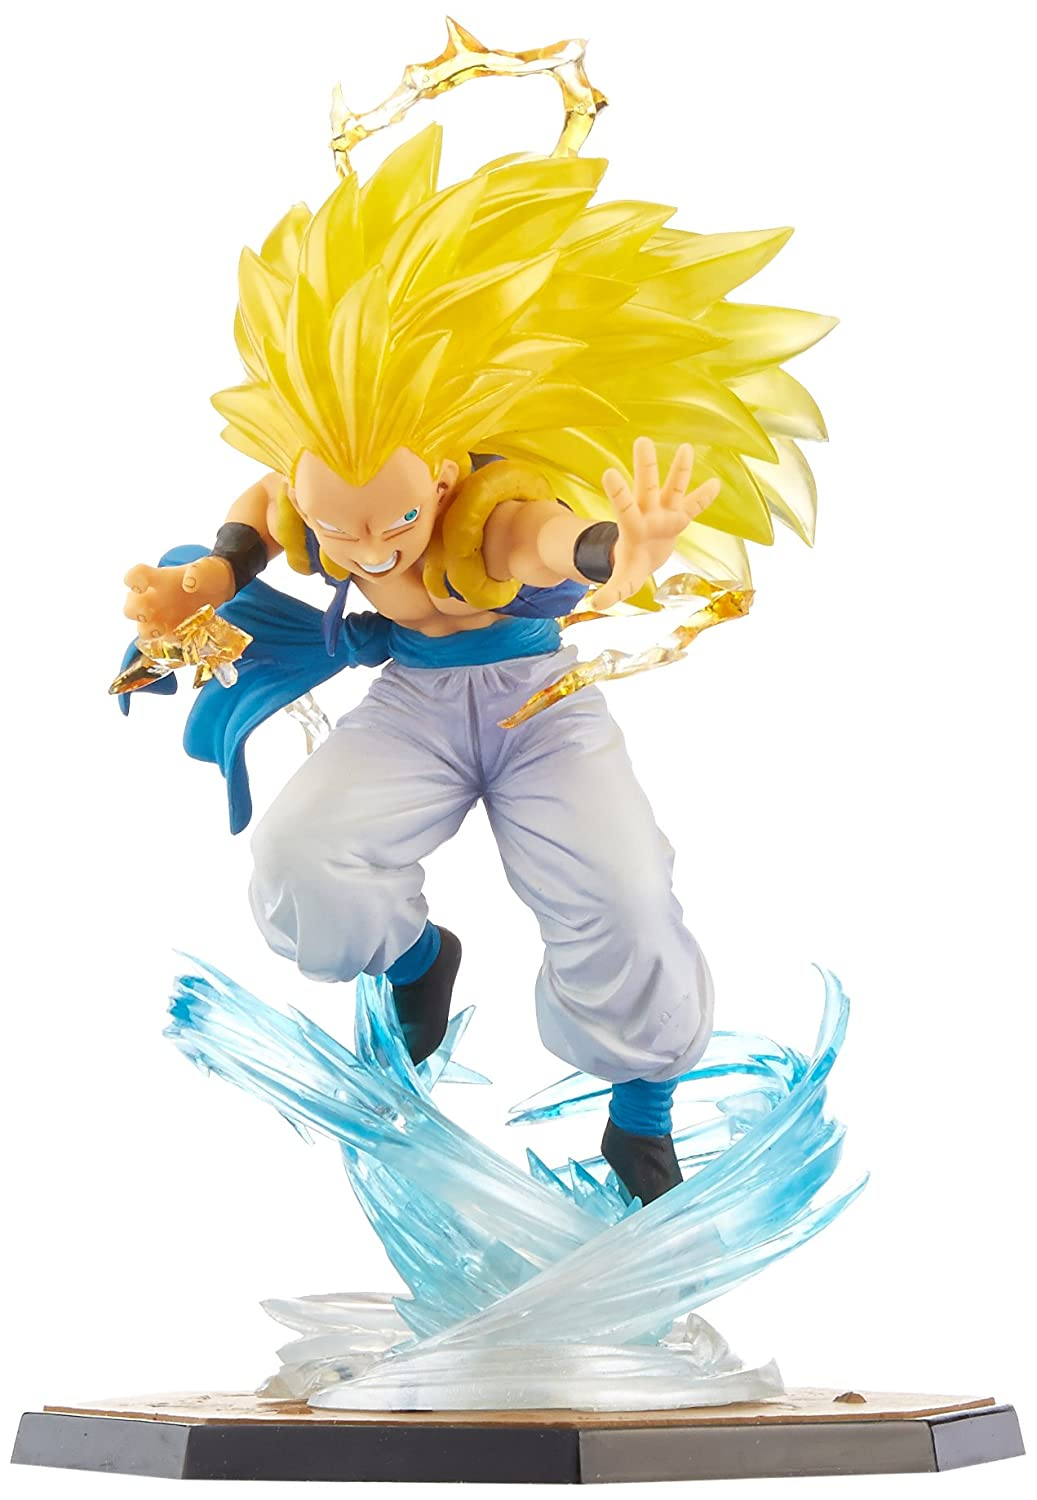 Bandai Tamashii Nationen S.H. Figuarts Zero Super Saiyan Gotenks Action Figur